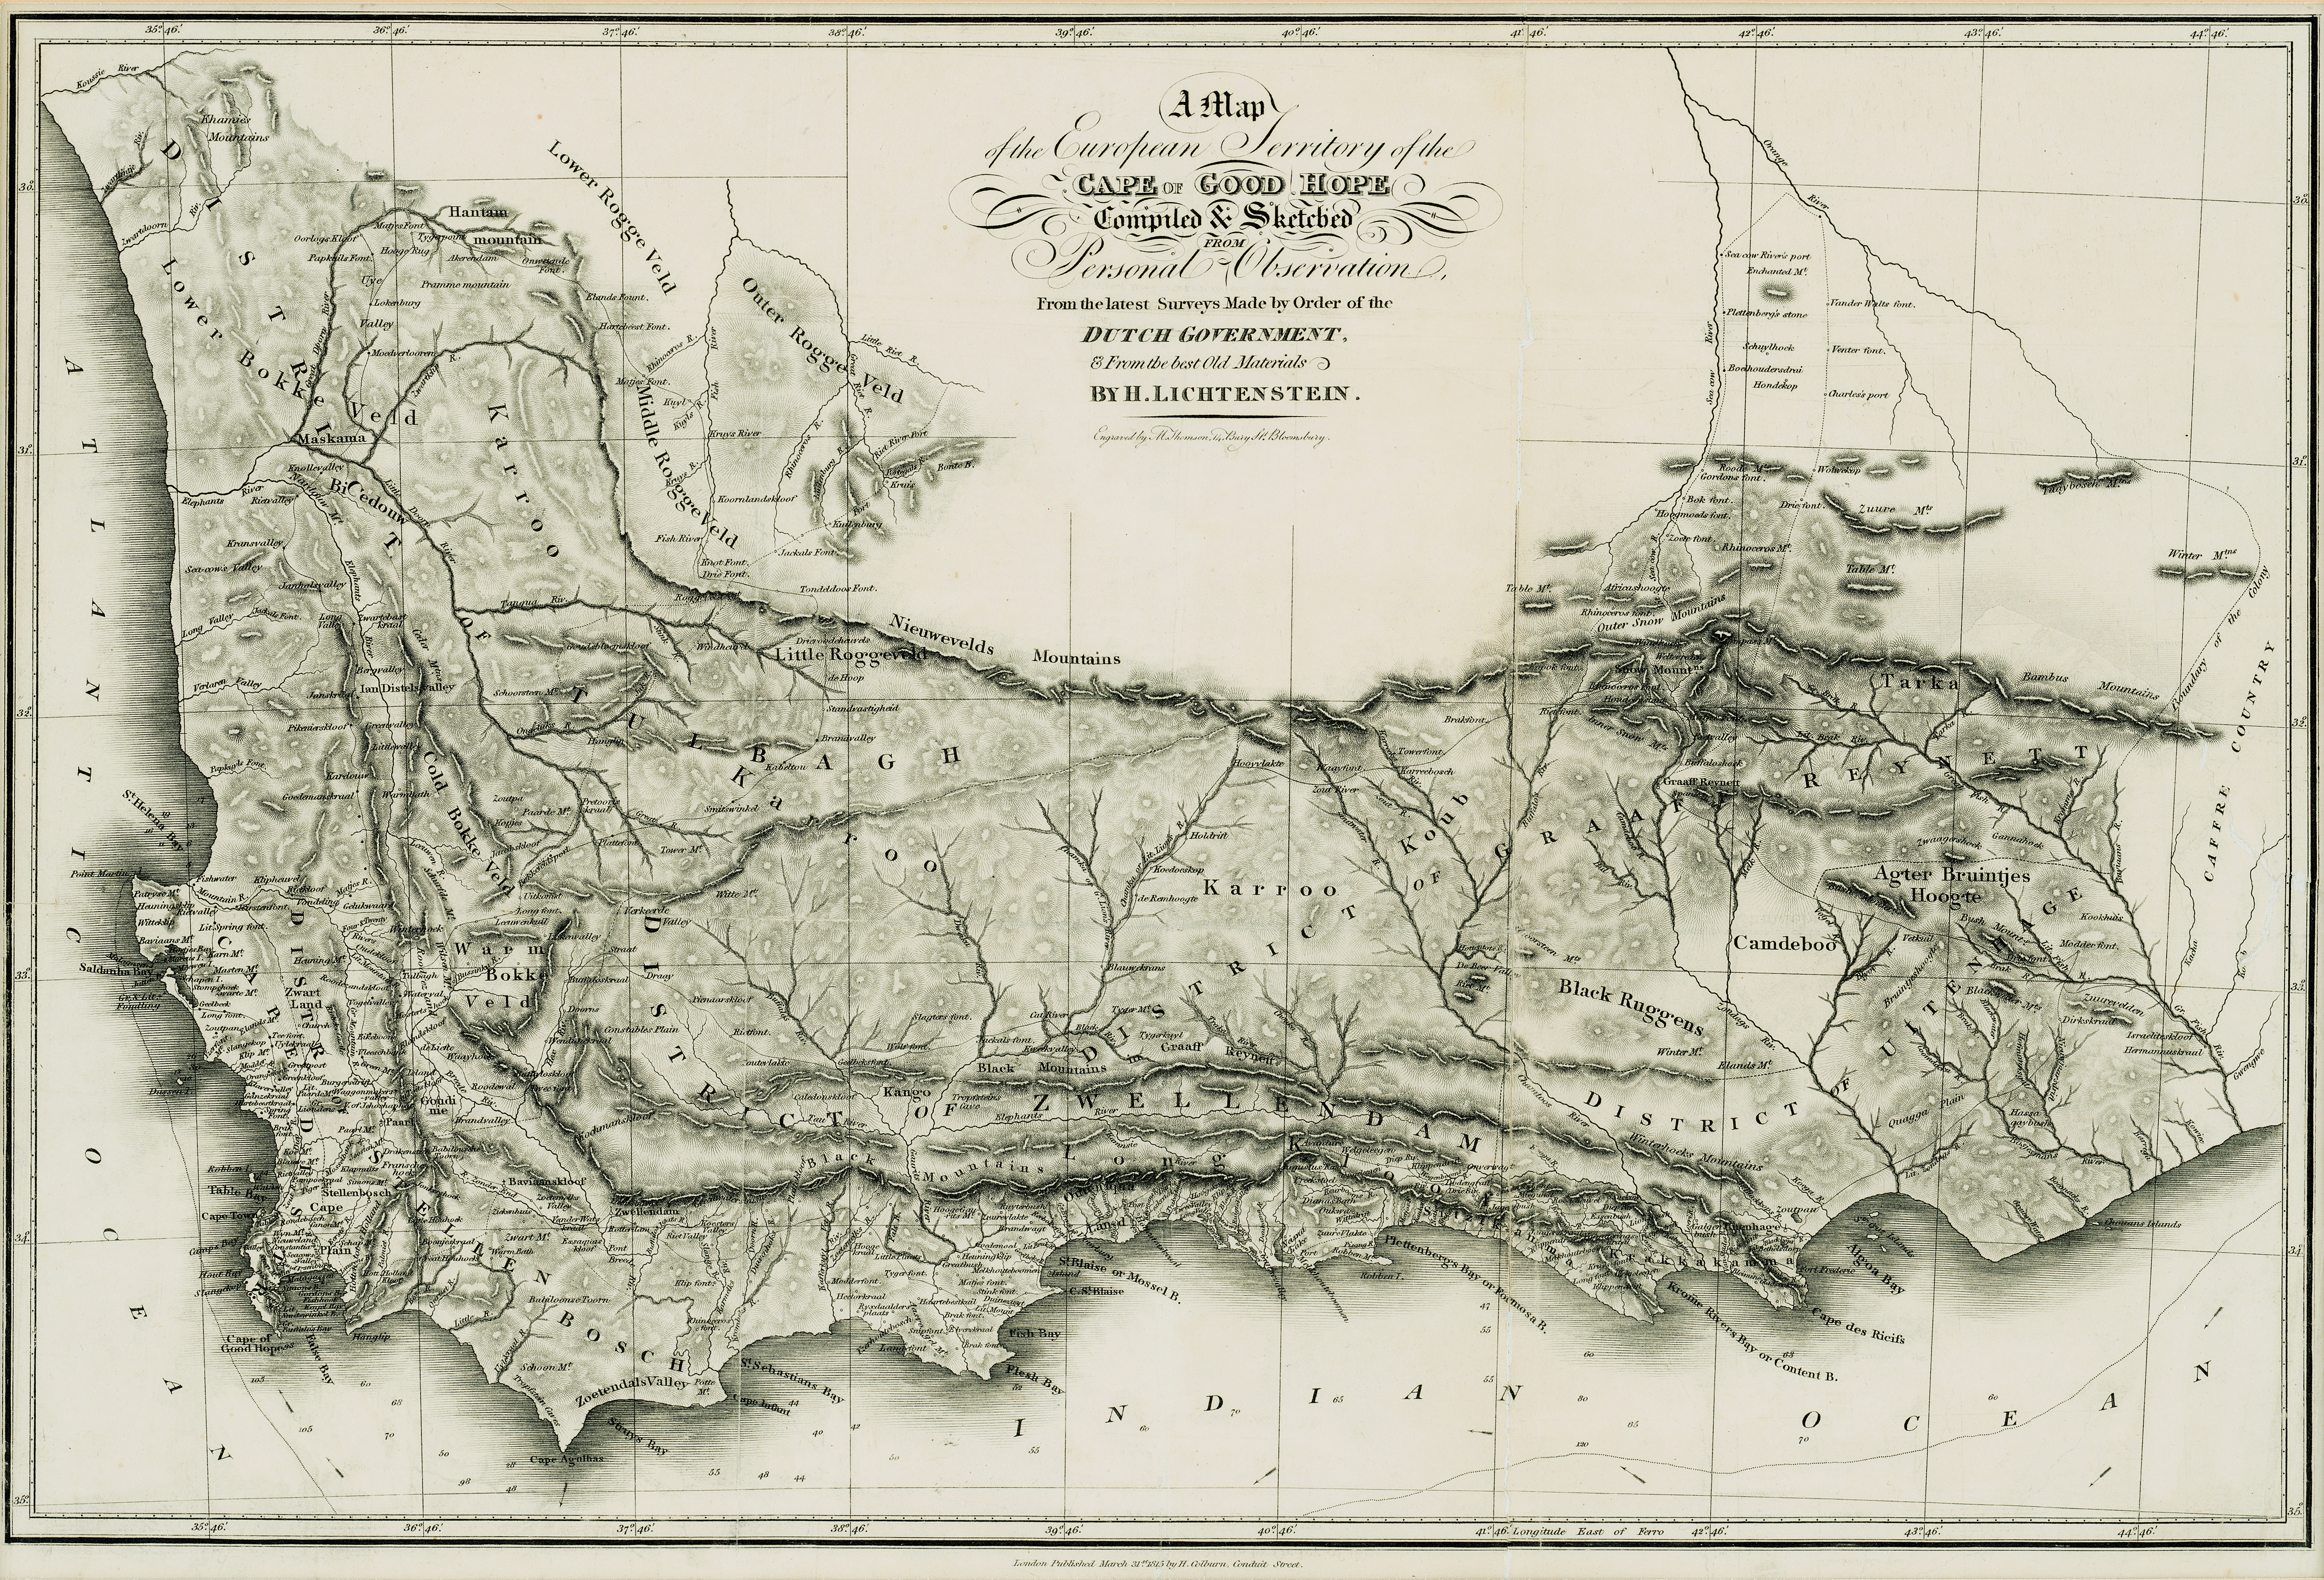 A map of the European territory of the Cape of Good Hope